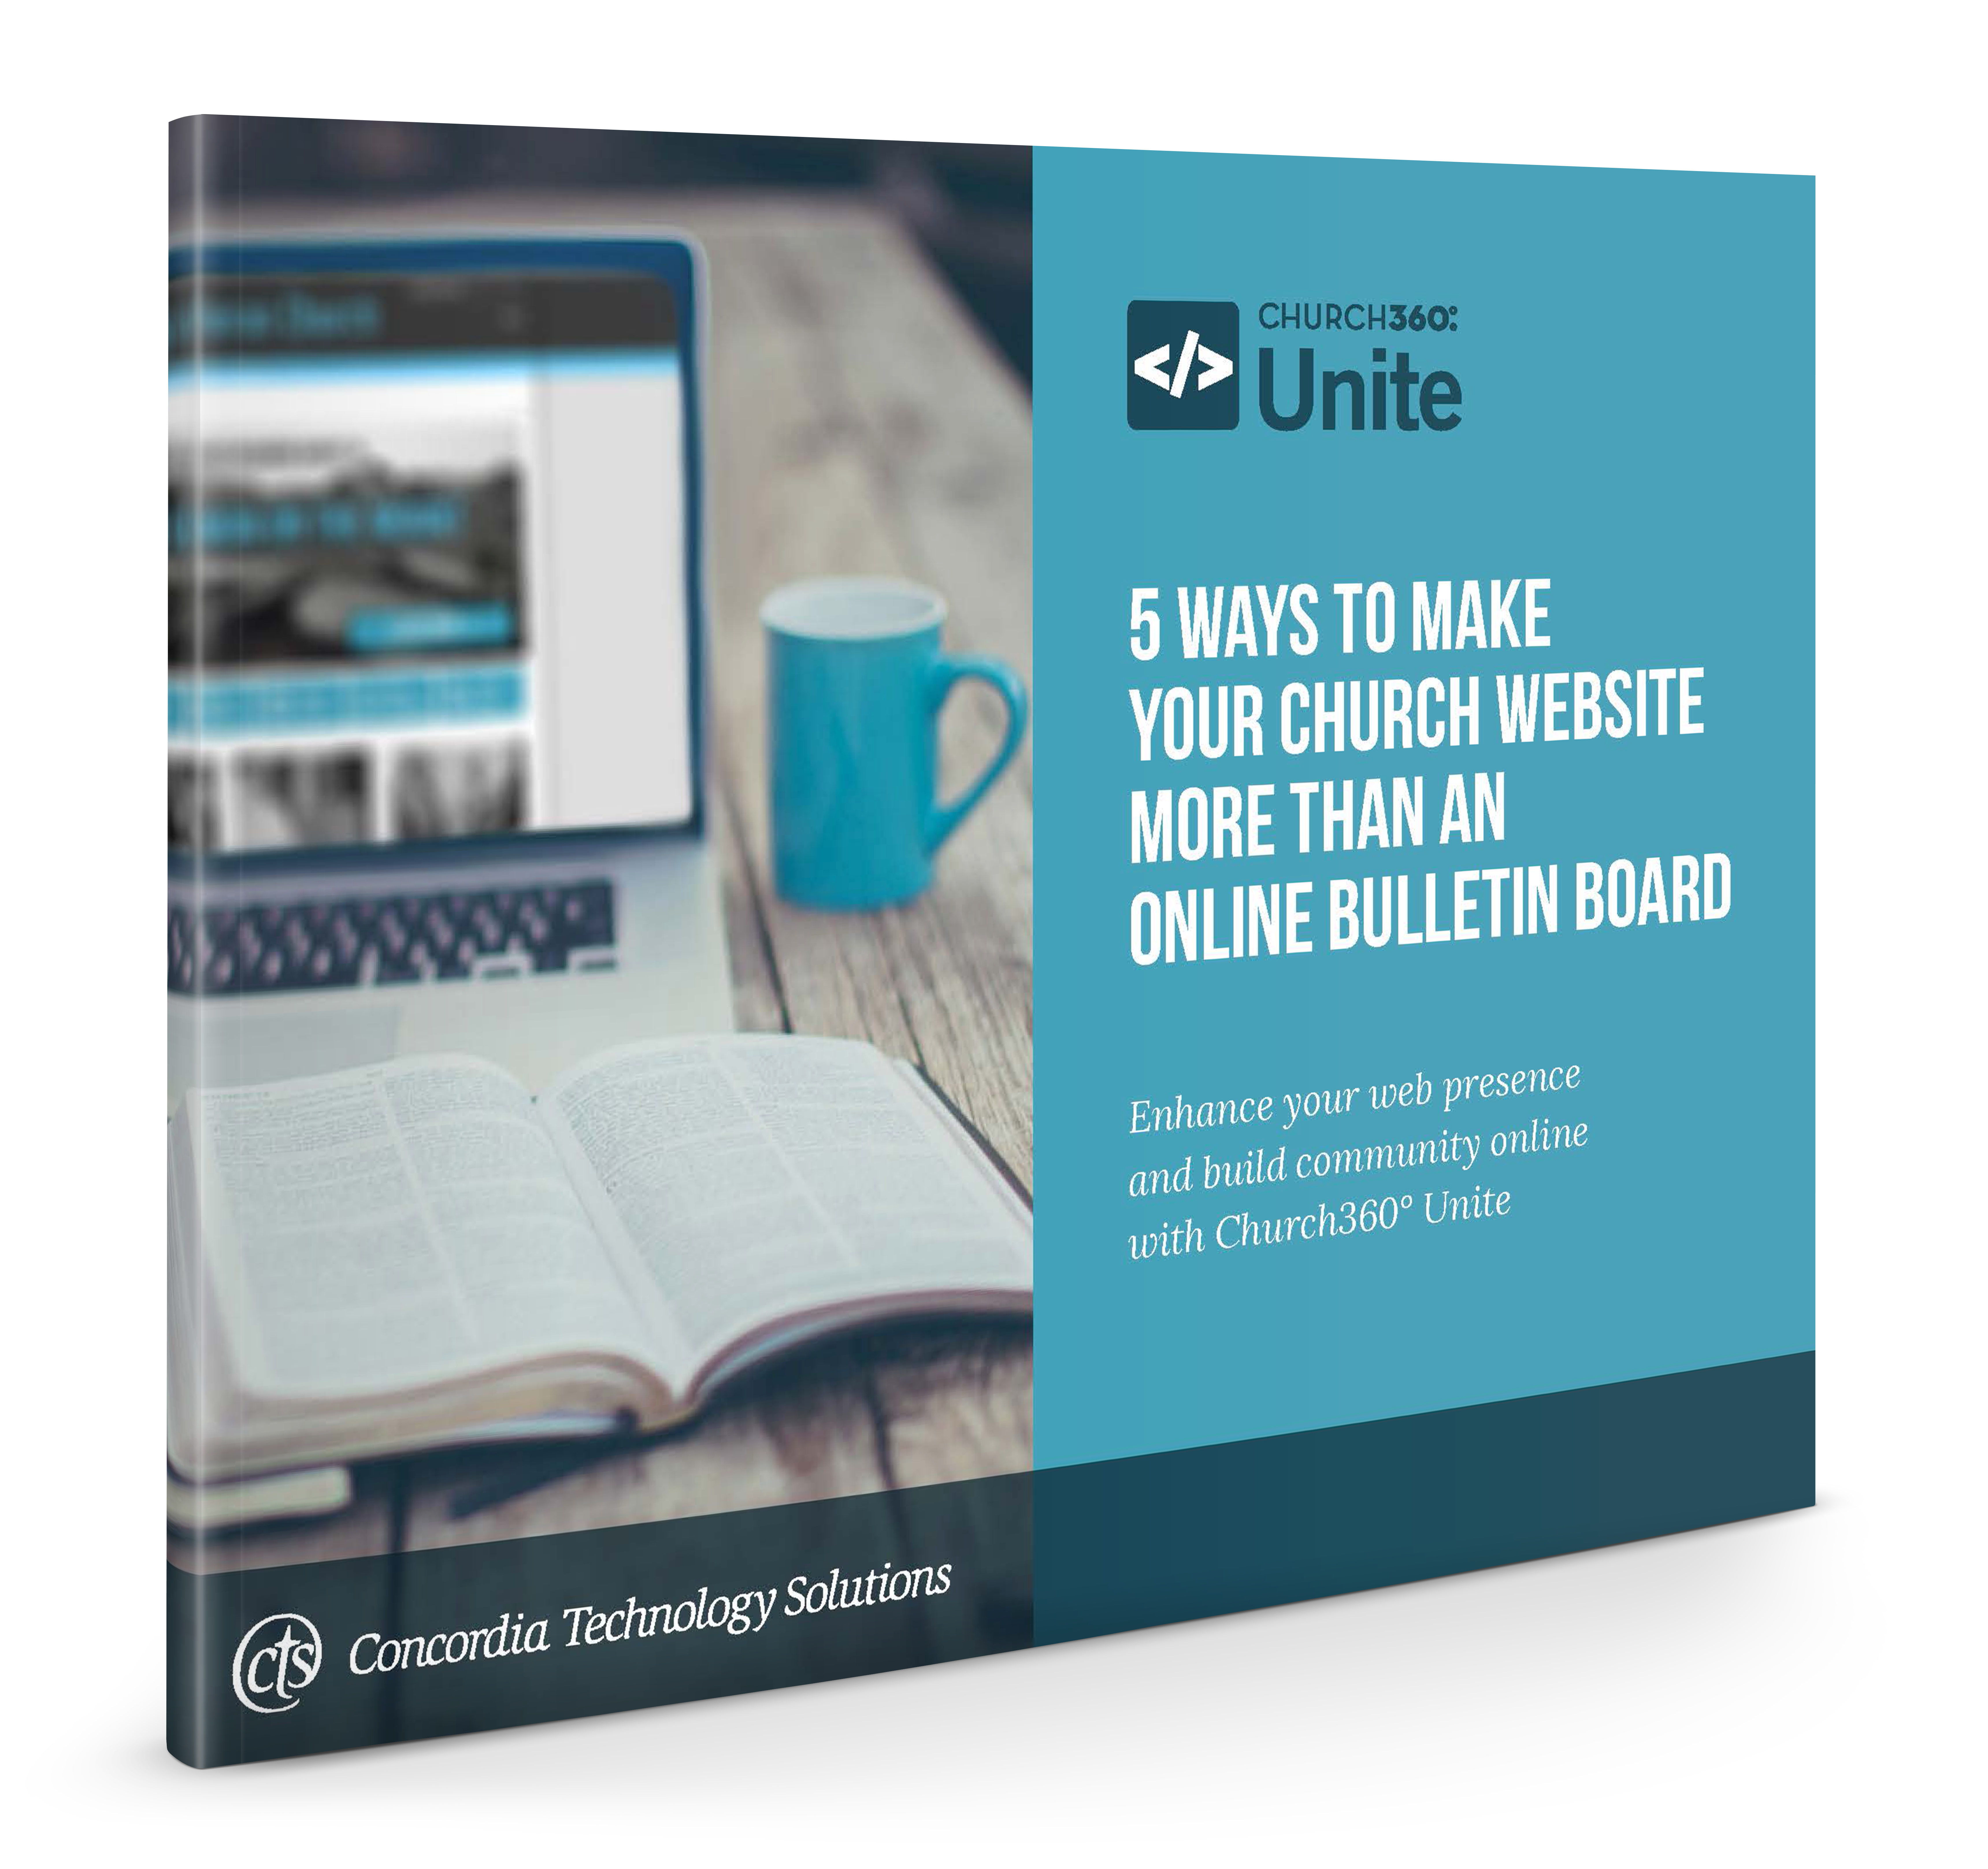 3D_Mockup_-_5_Ways_to_Make_Your_Church_Website_More_Than_An_Online_Bulletin_Board.png